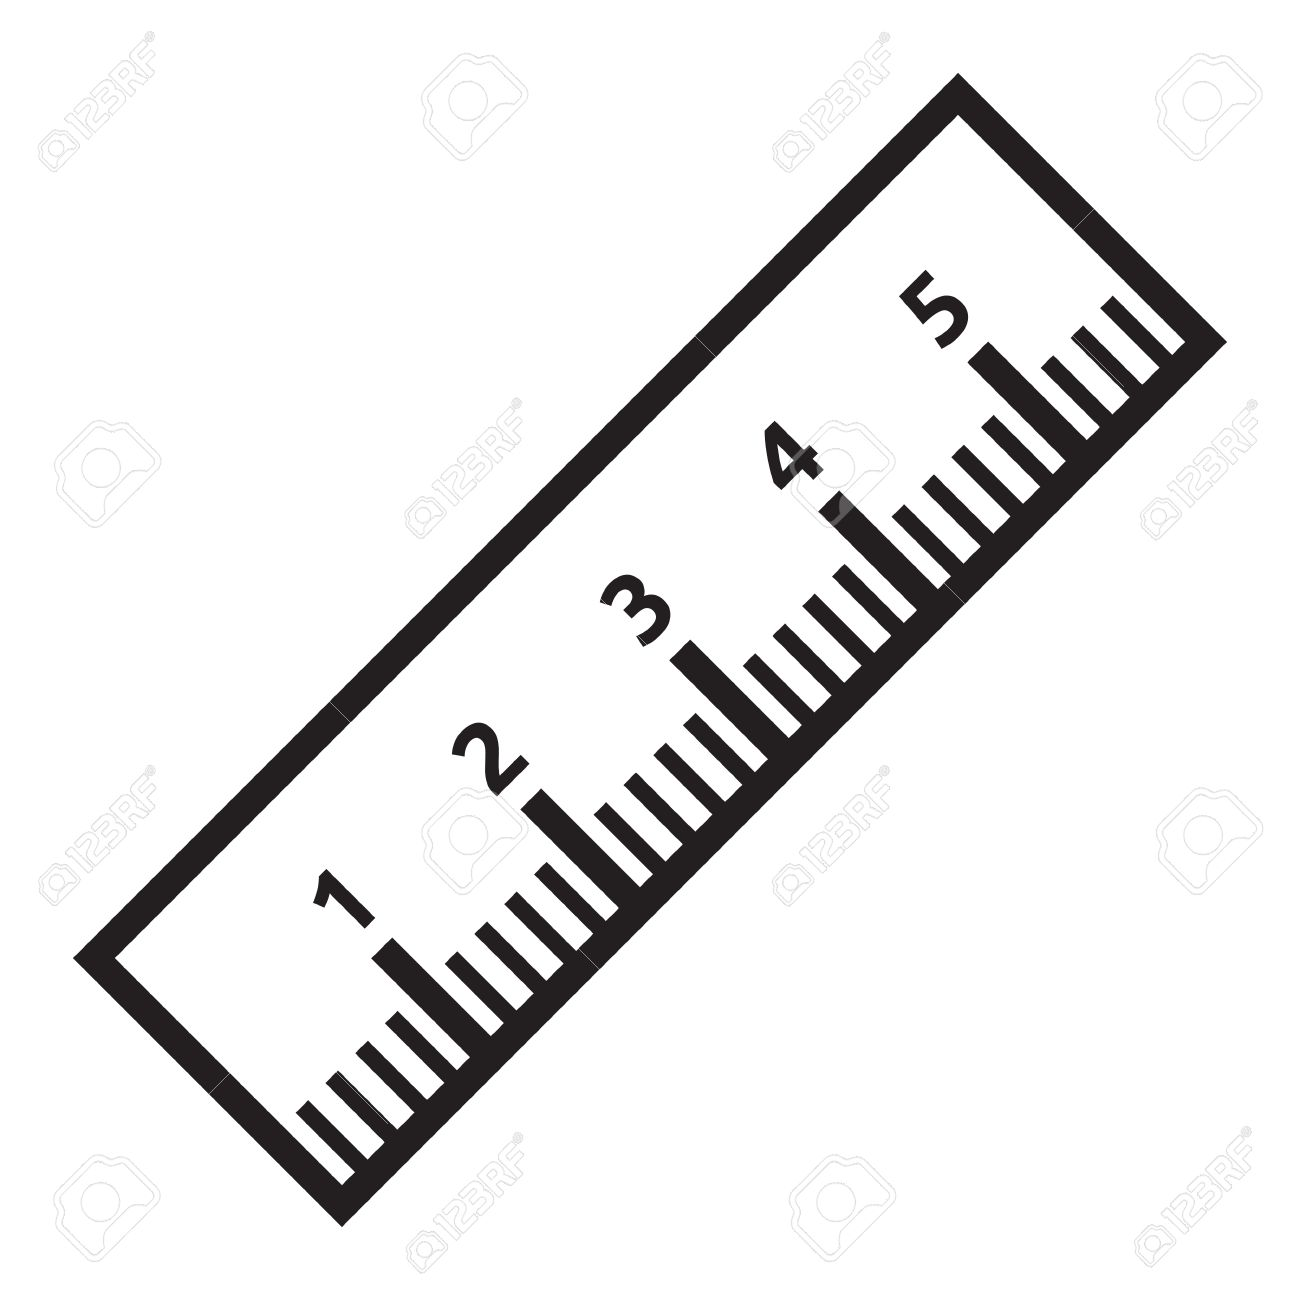 ruler icon straightedge icon royalty free cliparts vectors and stock illustration image 38127805 ruler icon straightedge icon